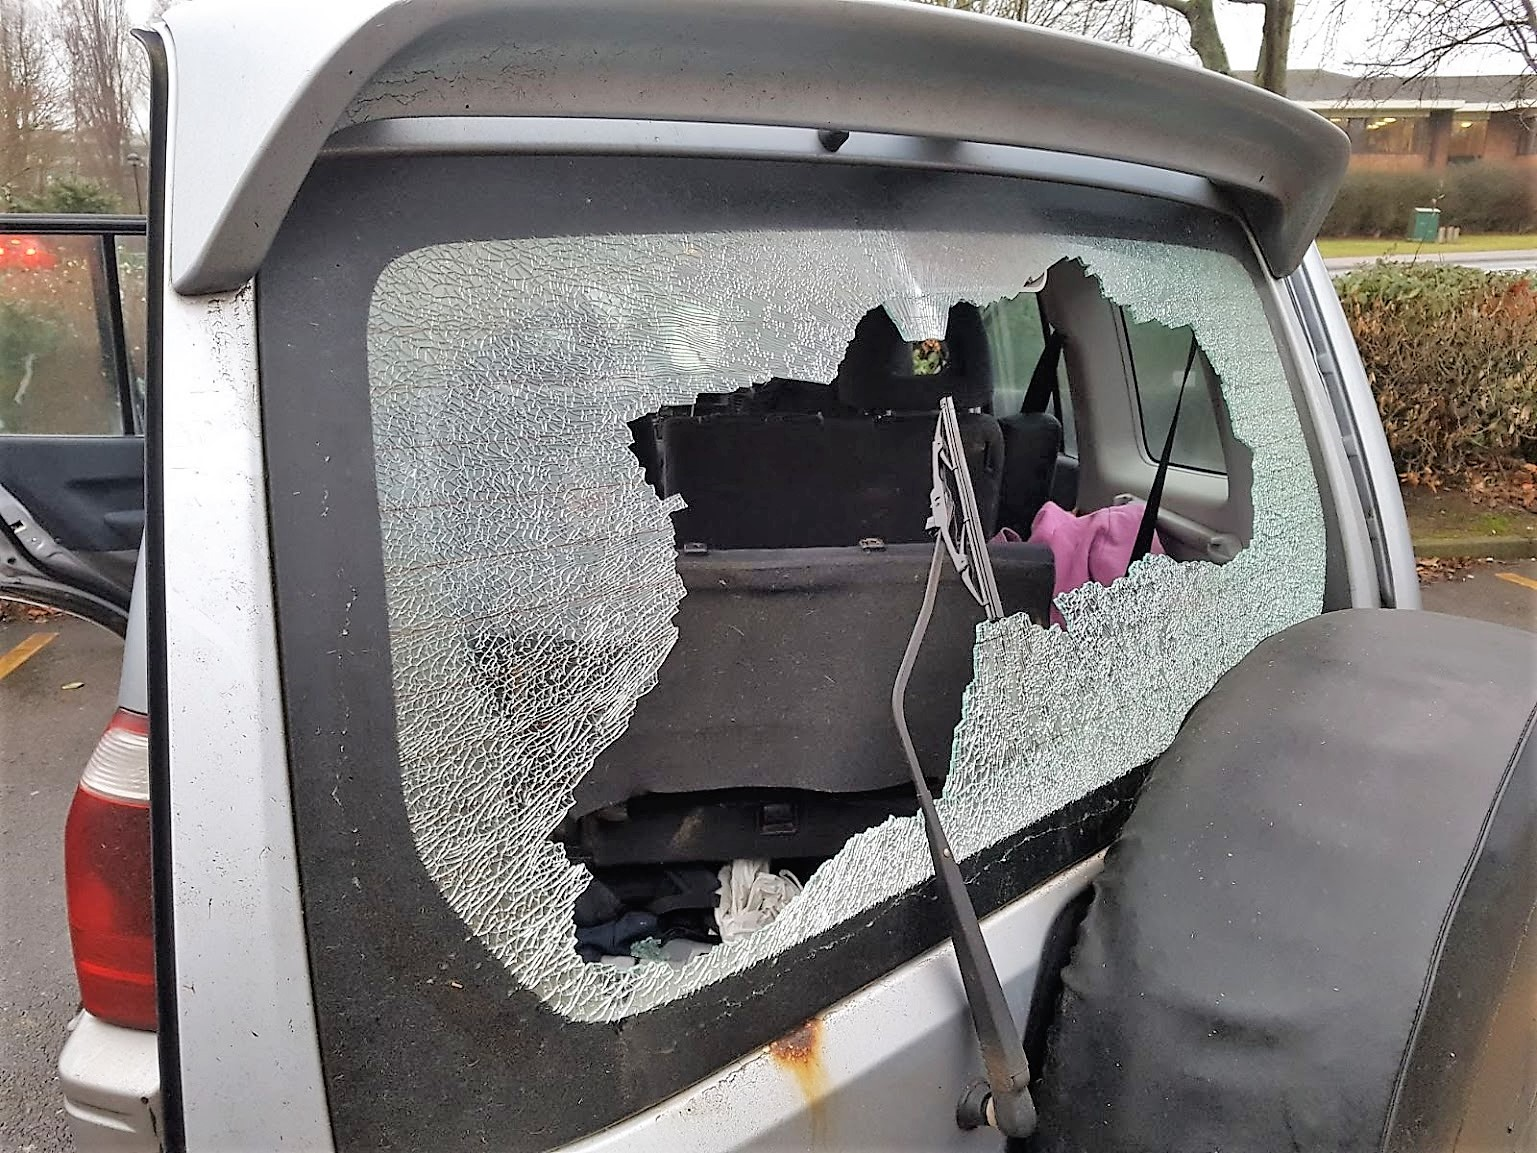 North Cambs Windows Smashed 2